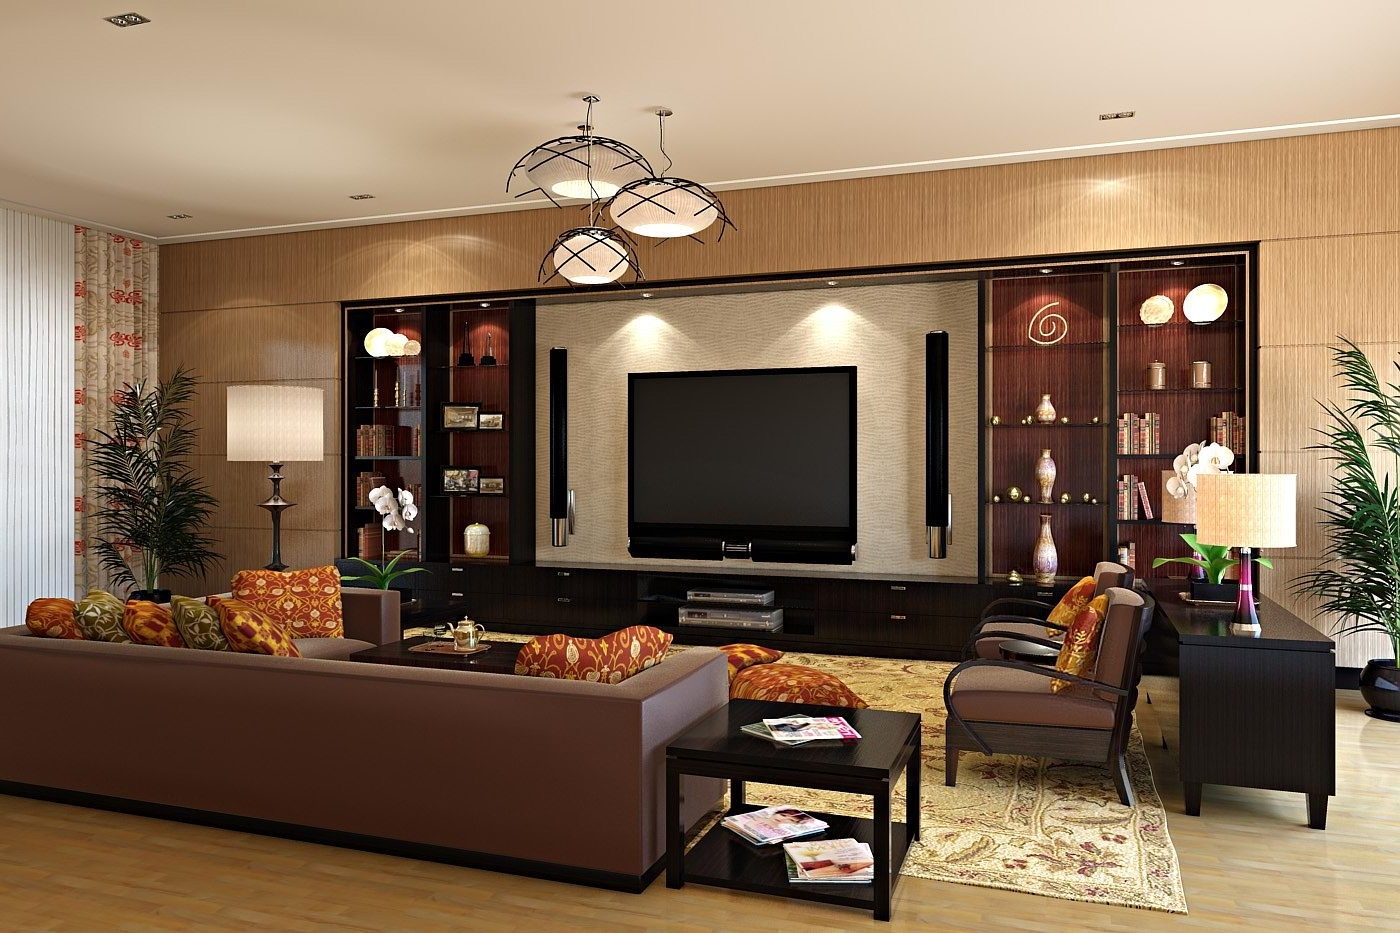 Featured Image of Luxury Italian Living Room